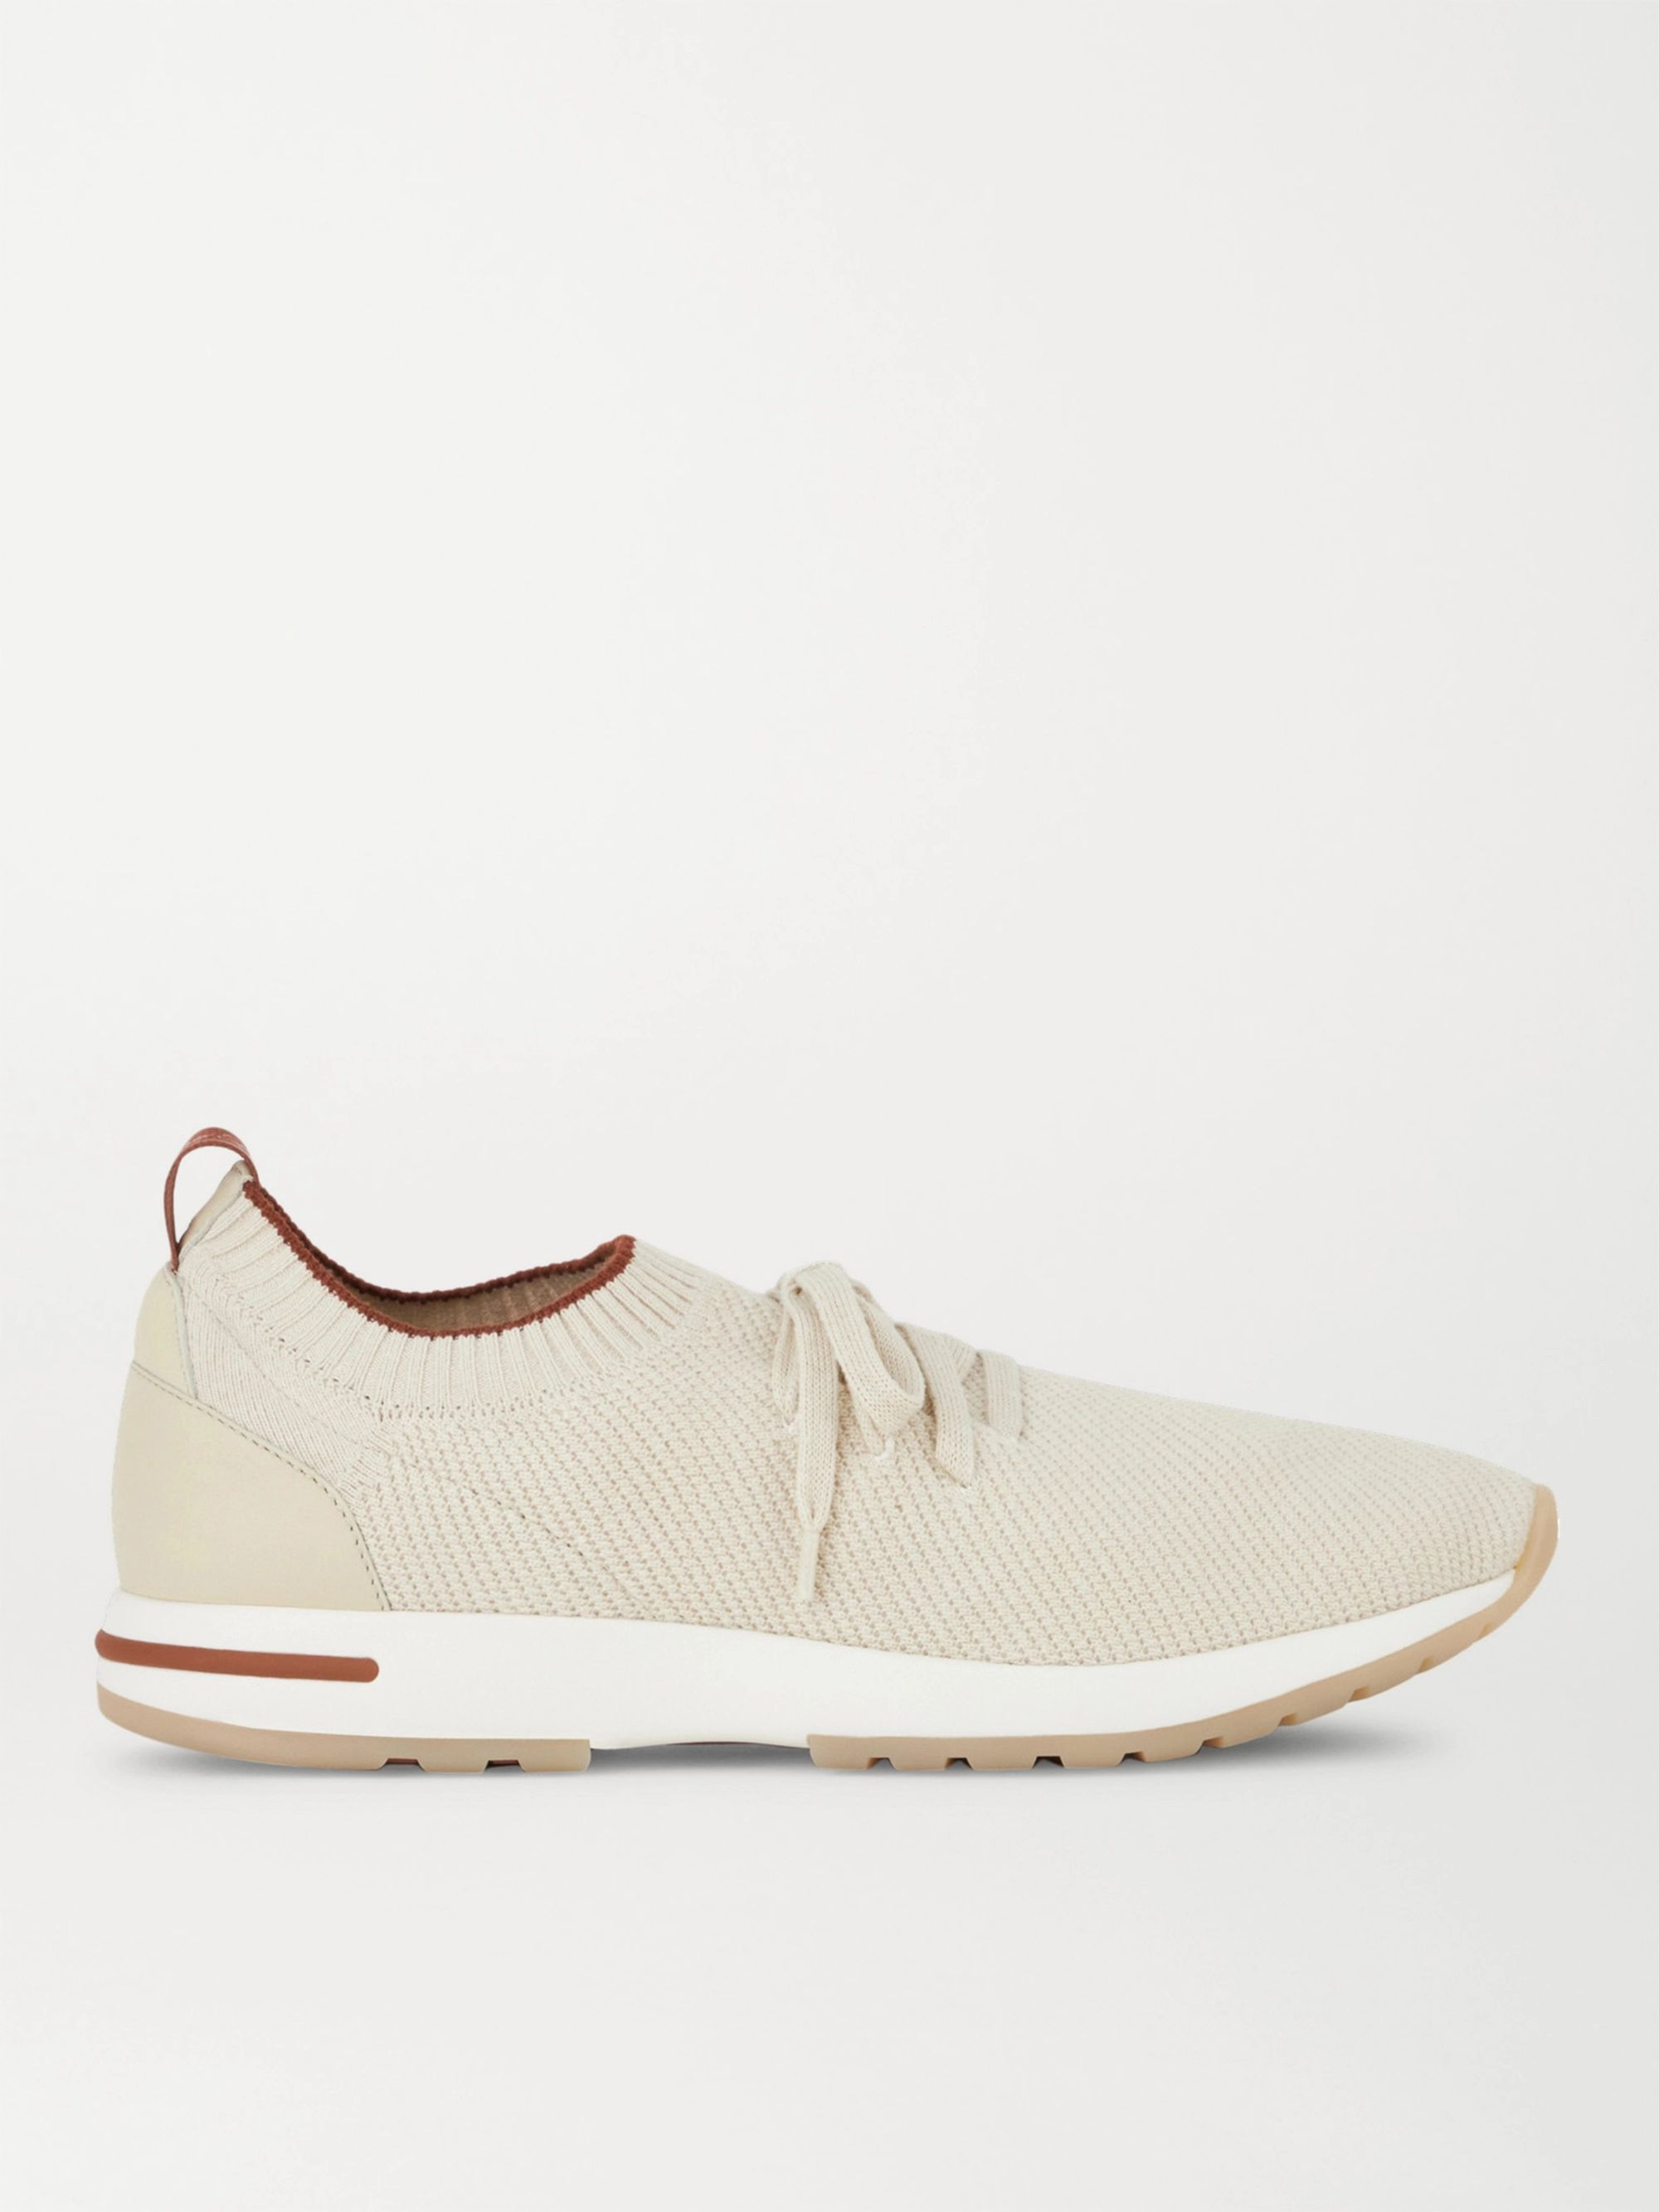 LORO PIANA 360 Flexy Walk Leather-Trimmed Knitted Silk and Linen-Blend Sneakers